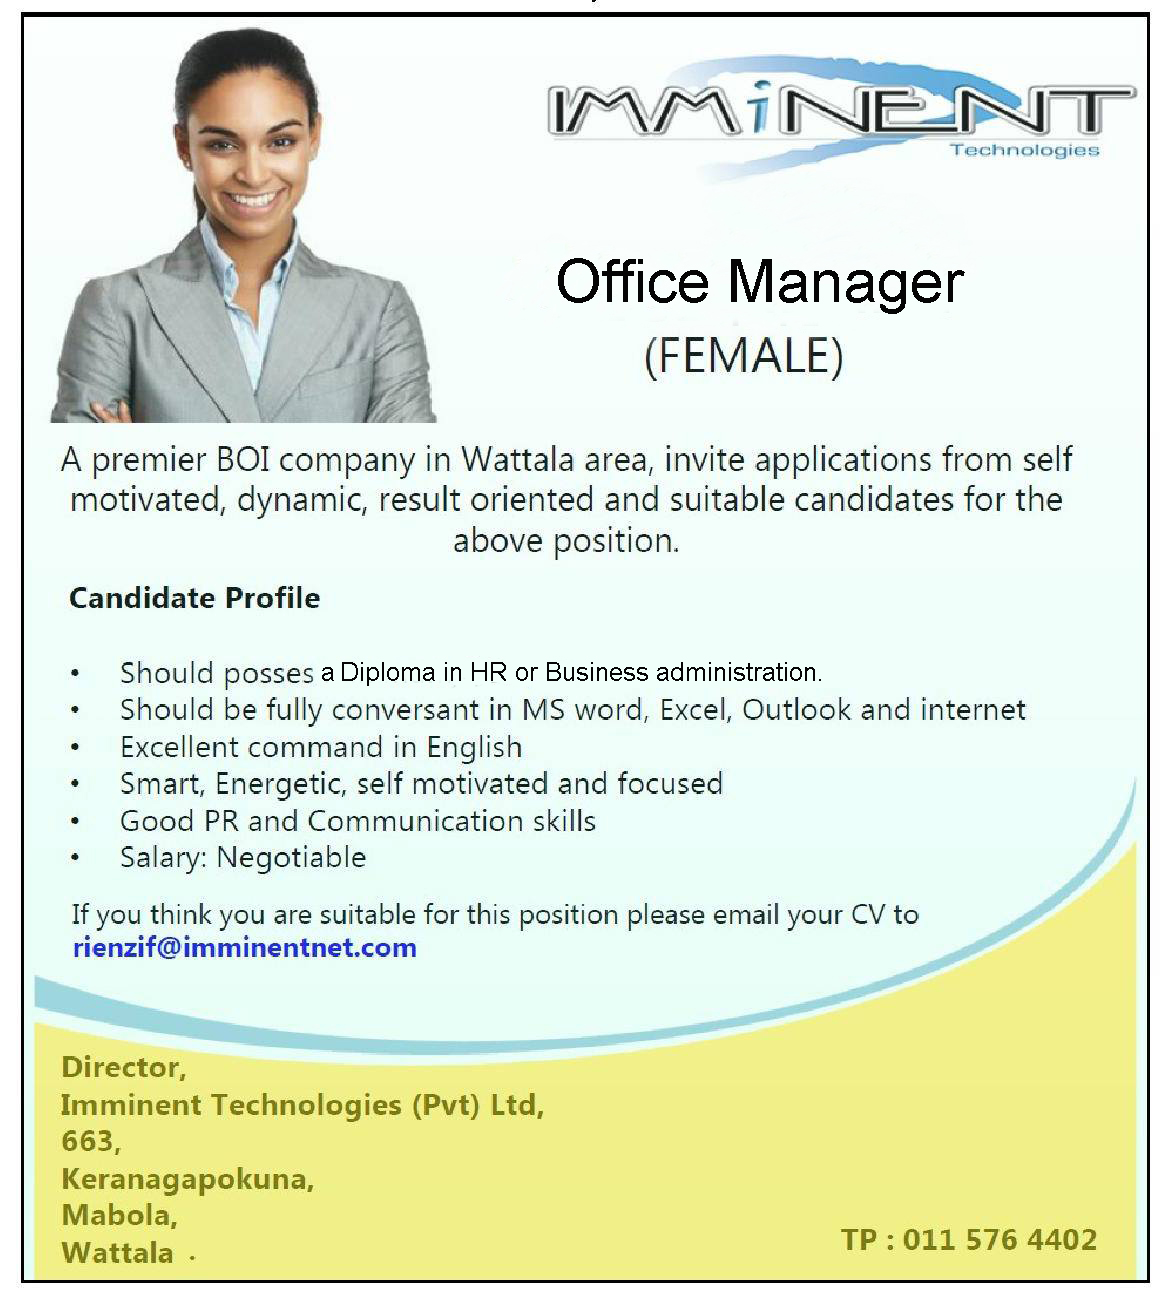 interested in this job submit your application